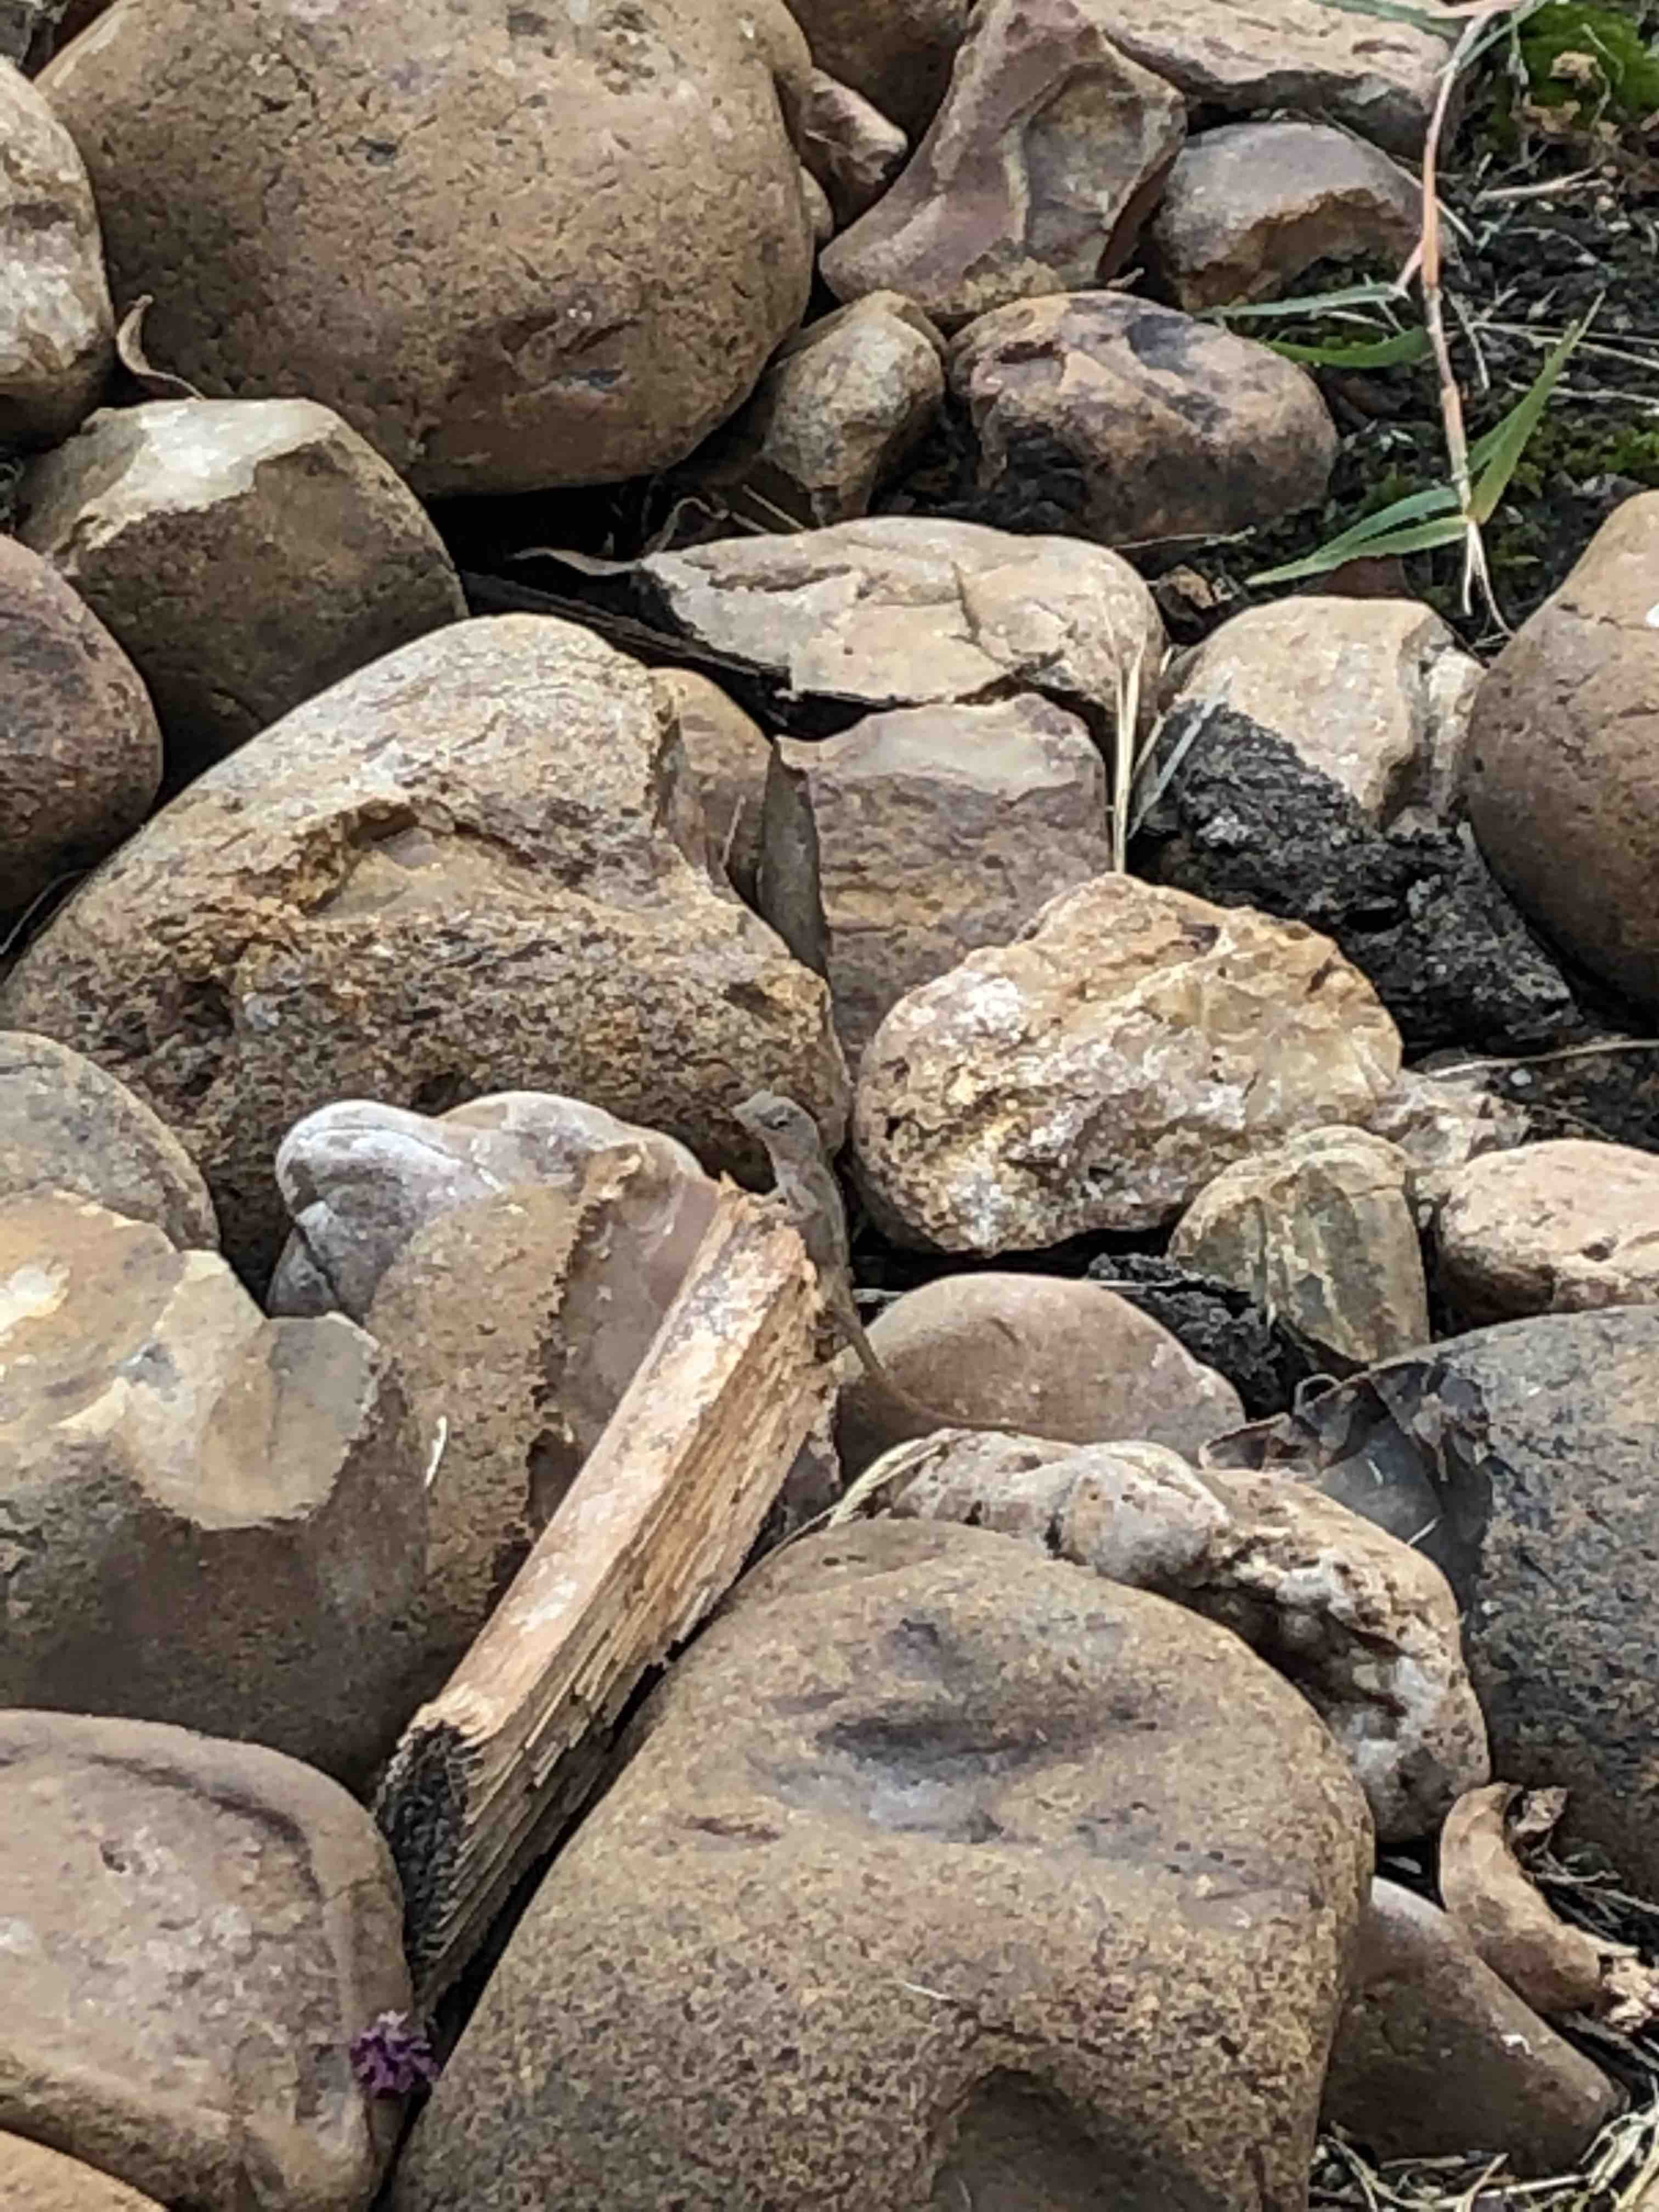 A very tiny lizard suns himself on some much larger rocks.